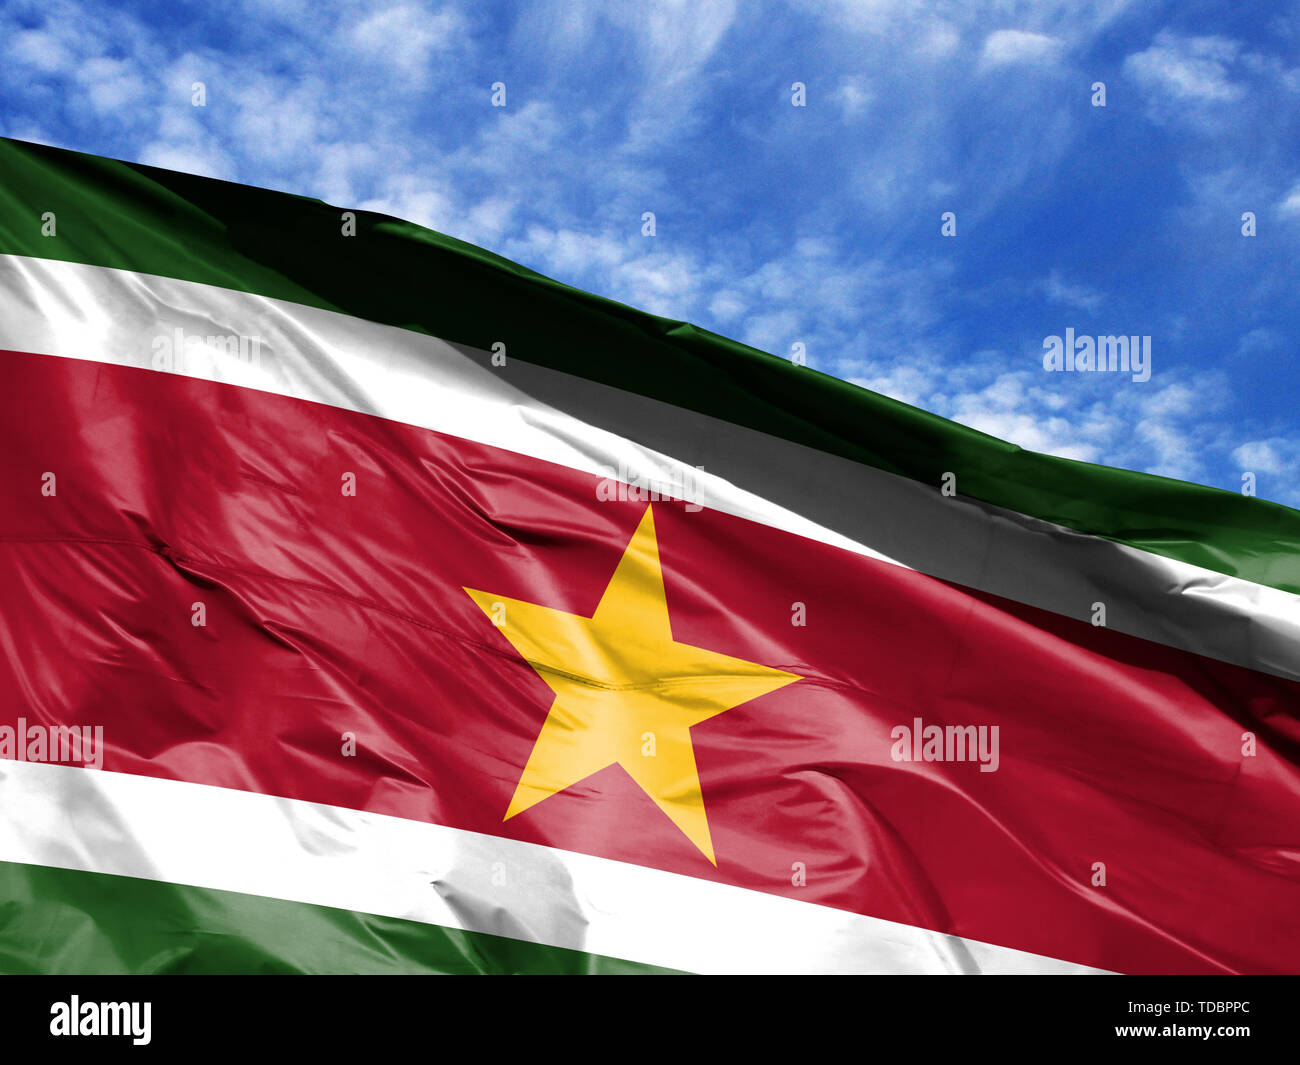 waving flag of Suriname close up against blue sky - Stock Image